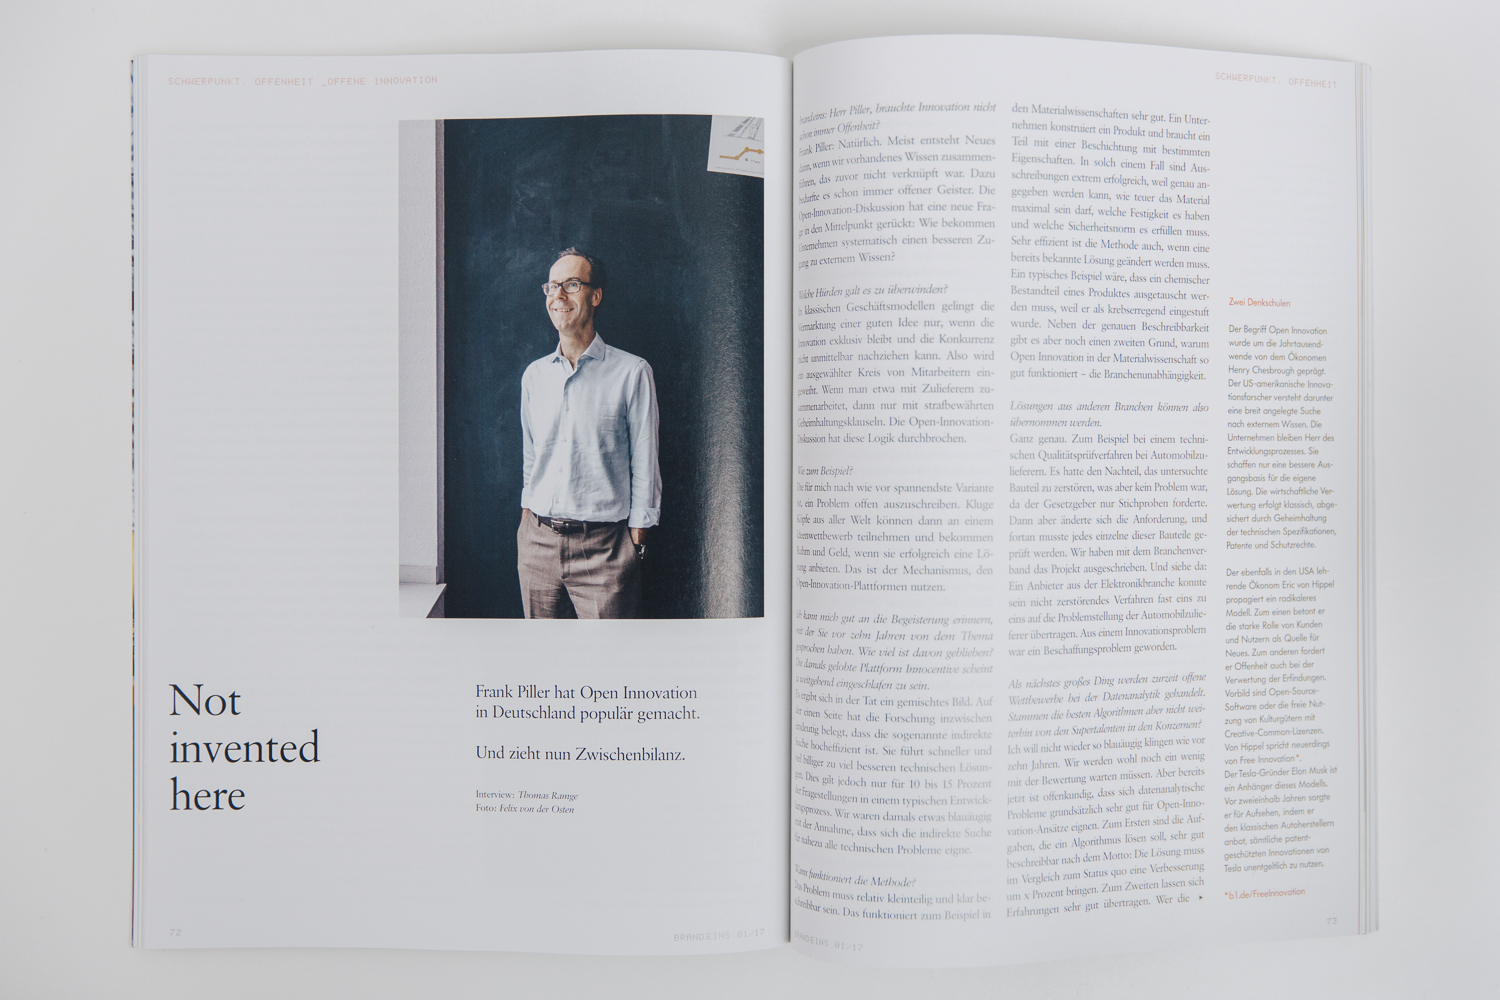 My portrait of Prof. Piller at the RWTH Aachen in the first issue of Brandeins in 2017, where he talks about »Open Innovation« in Germany.